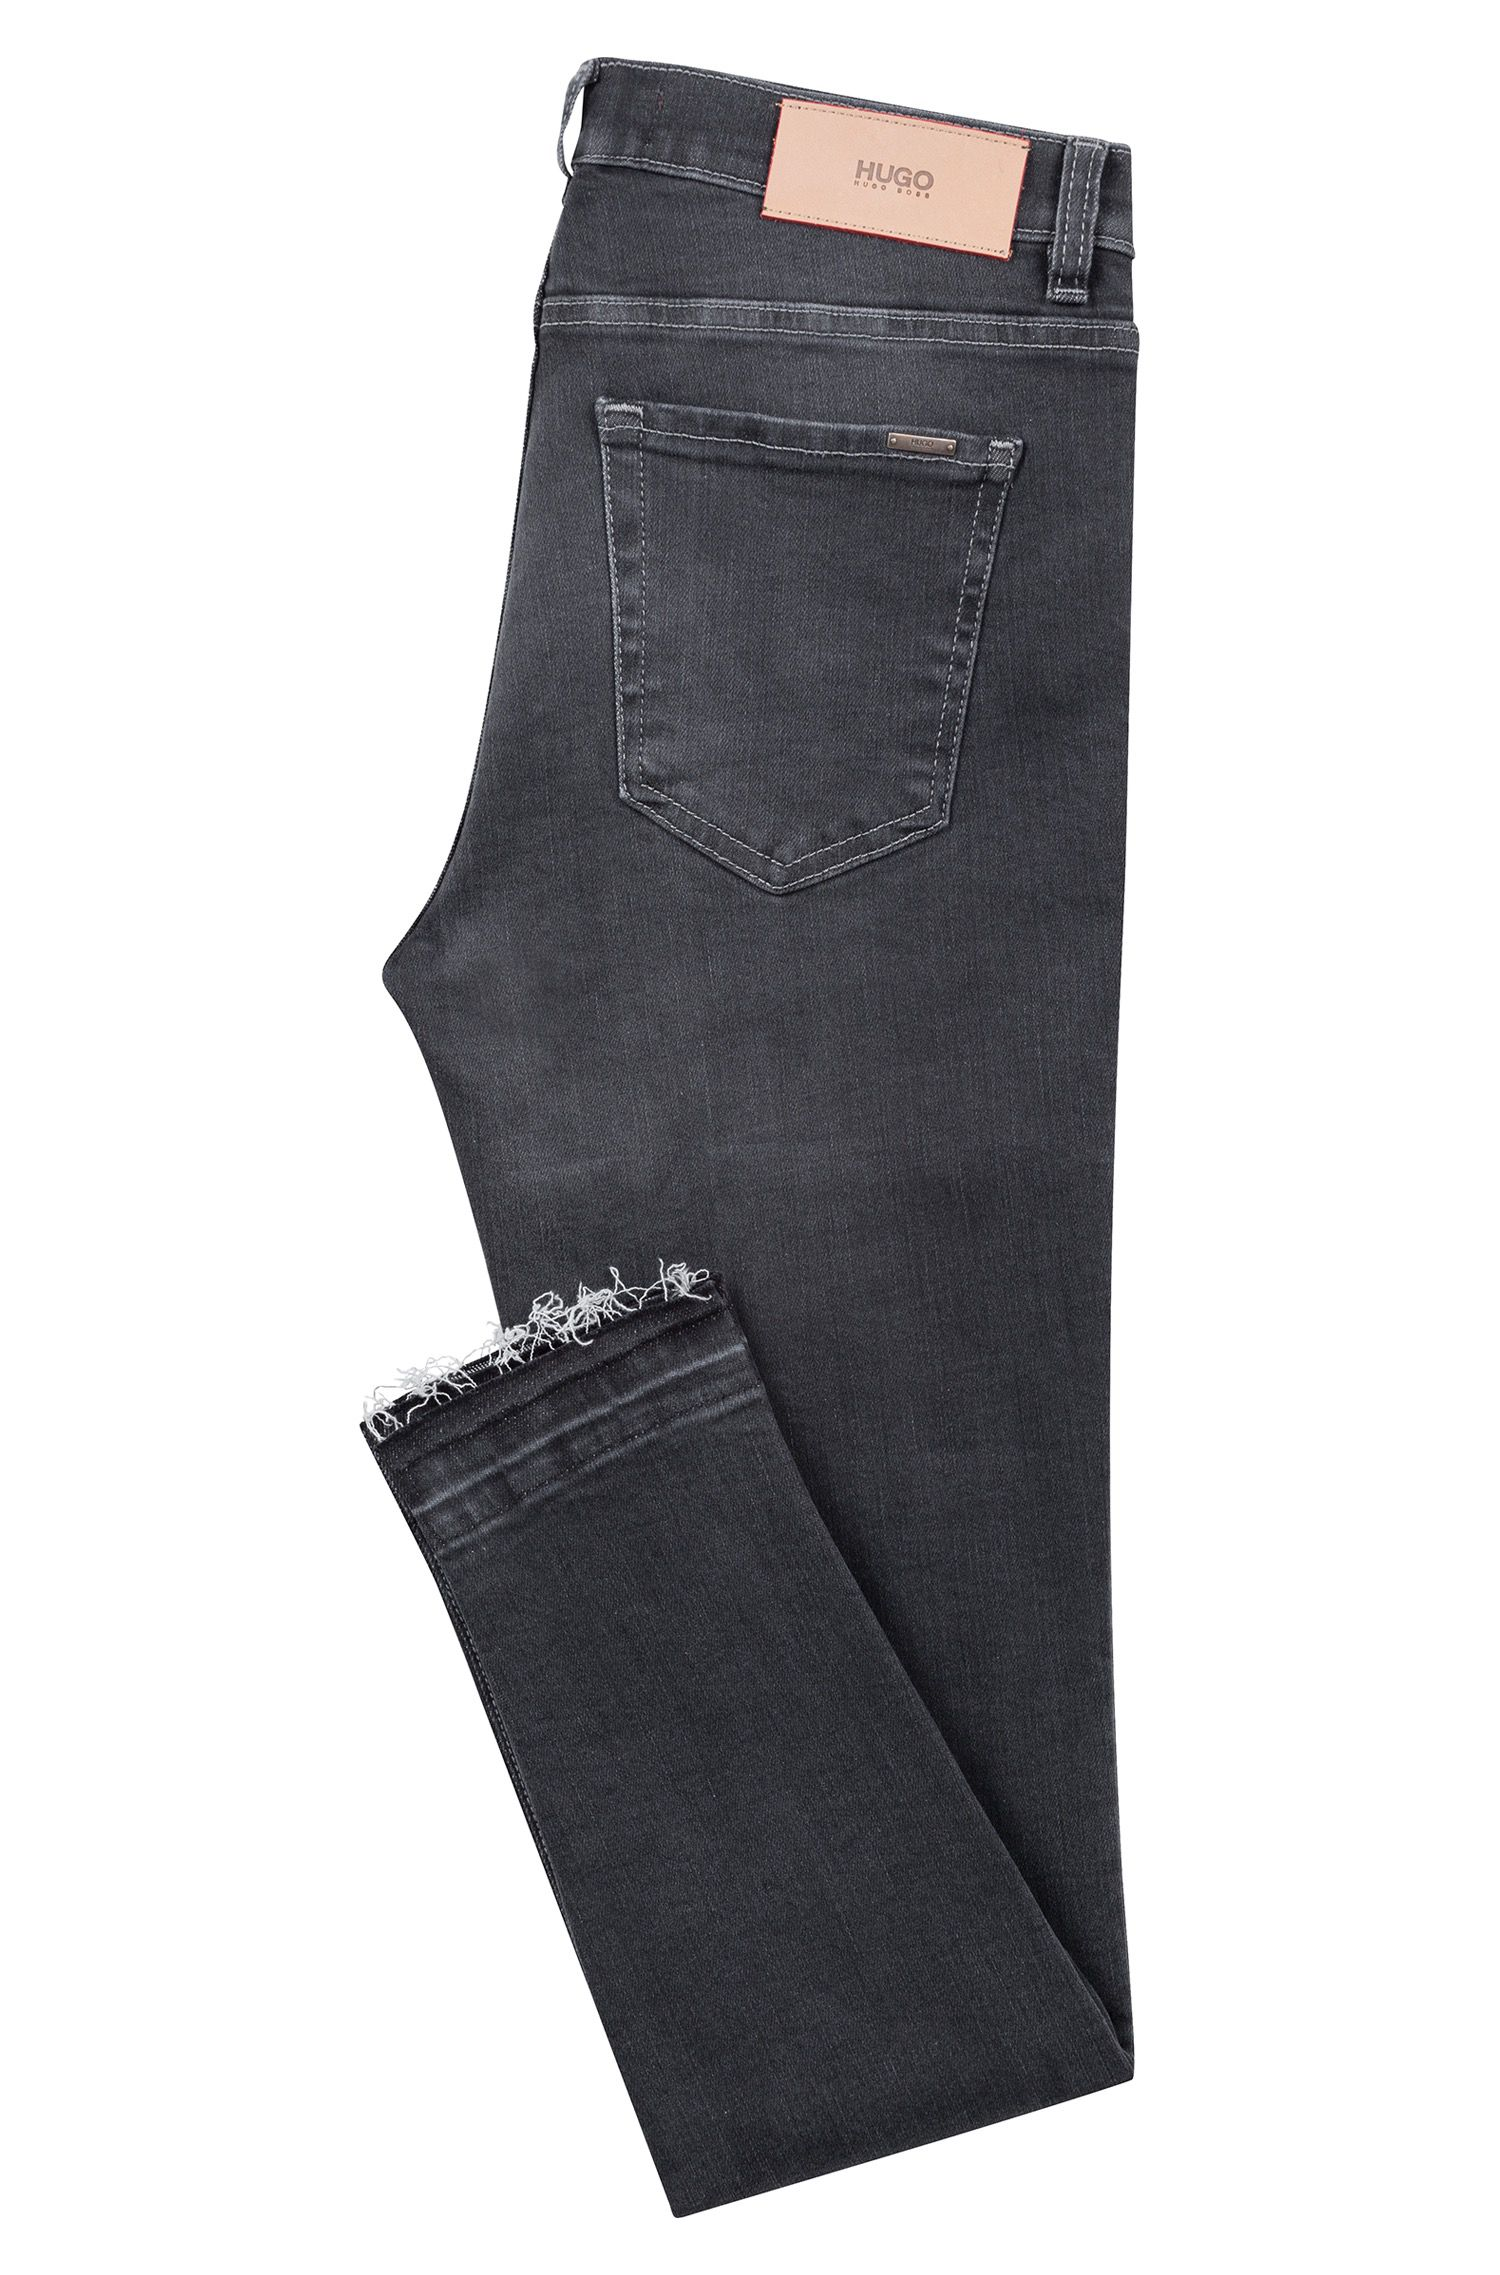 Extra Slim-Fit Jeans in Cropped-Länge mit offenen Kanten